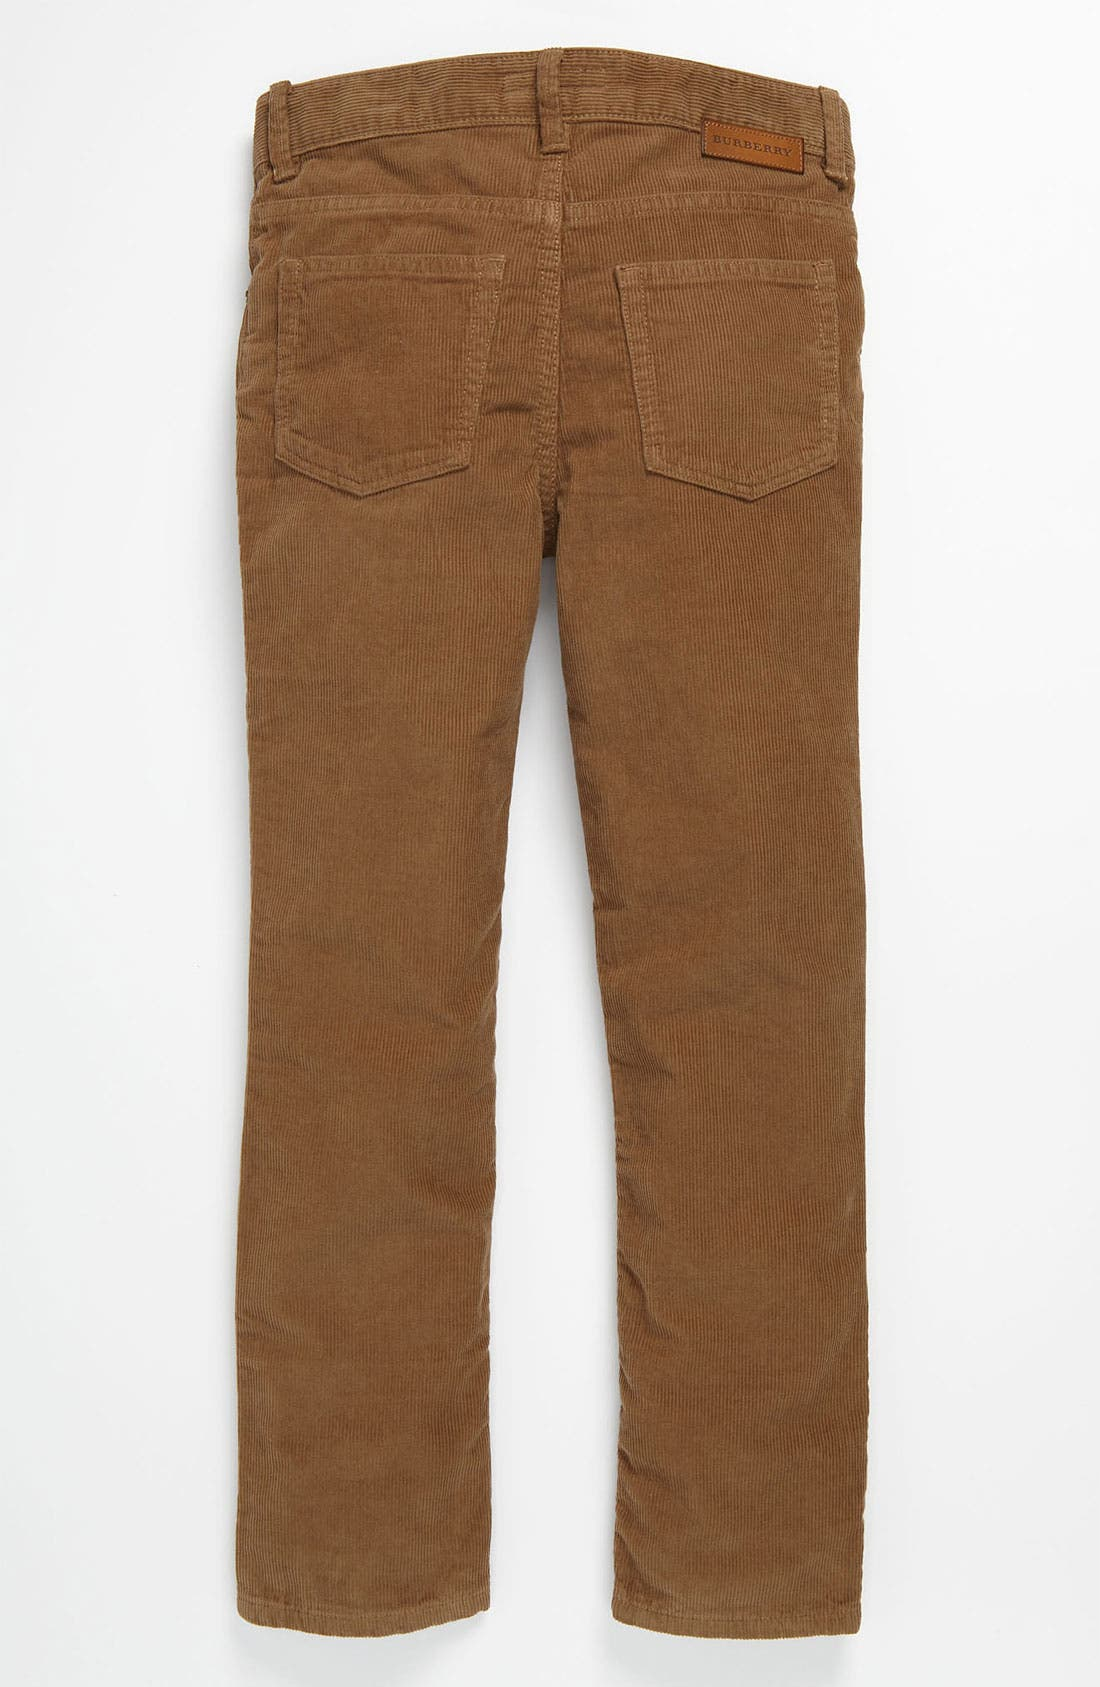 Alternate Image 1 Selected - Burberry Corduroy Pants (Little Boys)